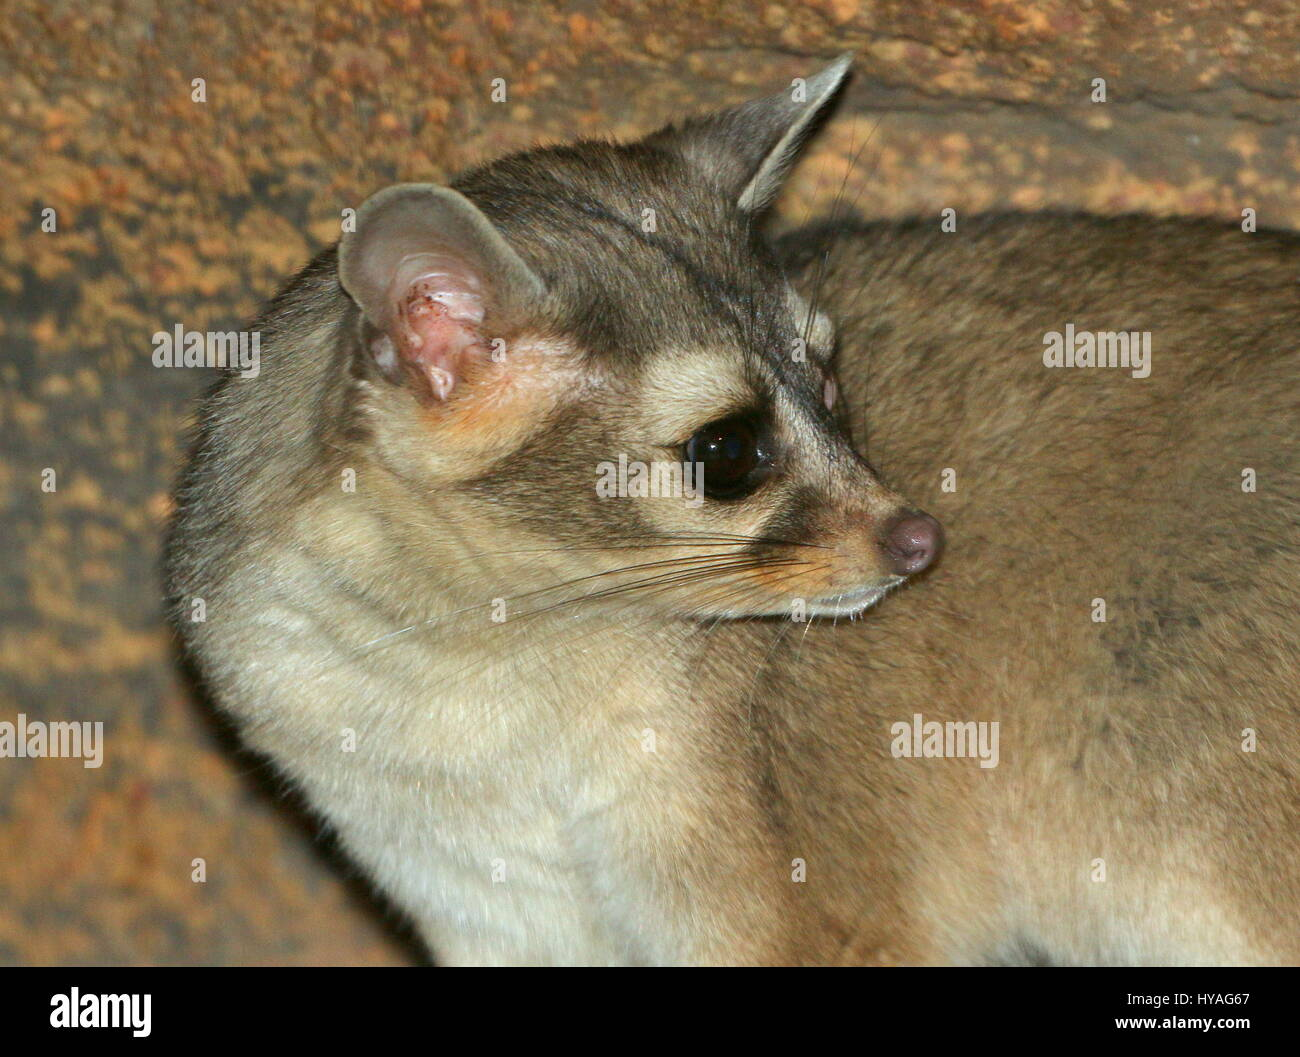 North American / Mexican Ring-tailed cat (Bassariscus astutus), detailed close-up of the head. - Stock Image